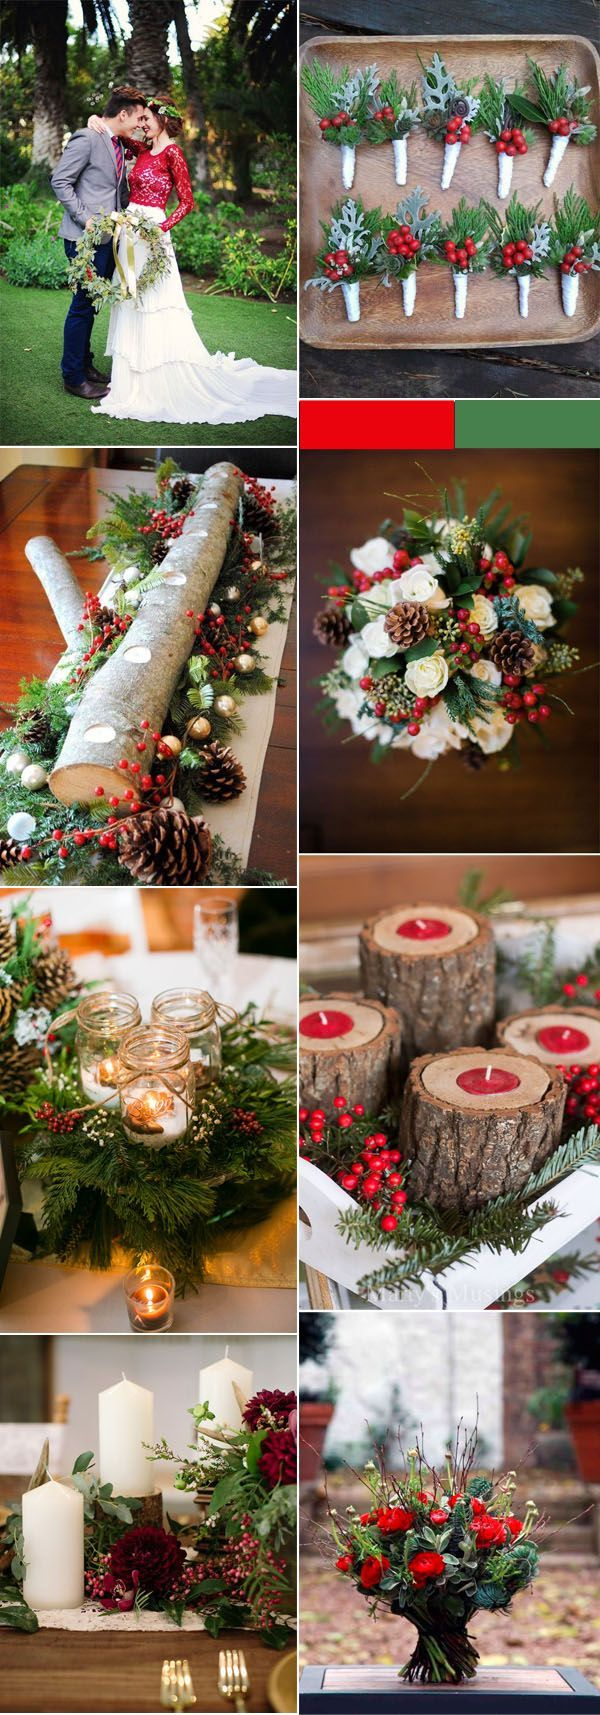 511 best wedding colors themes images on pinterest wedding color cozy christmas festive wedding ideas for winter brides junglespirit Image collections